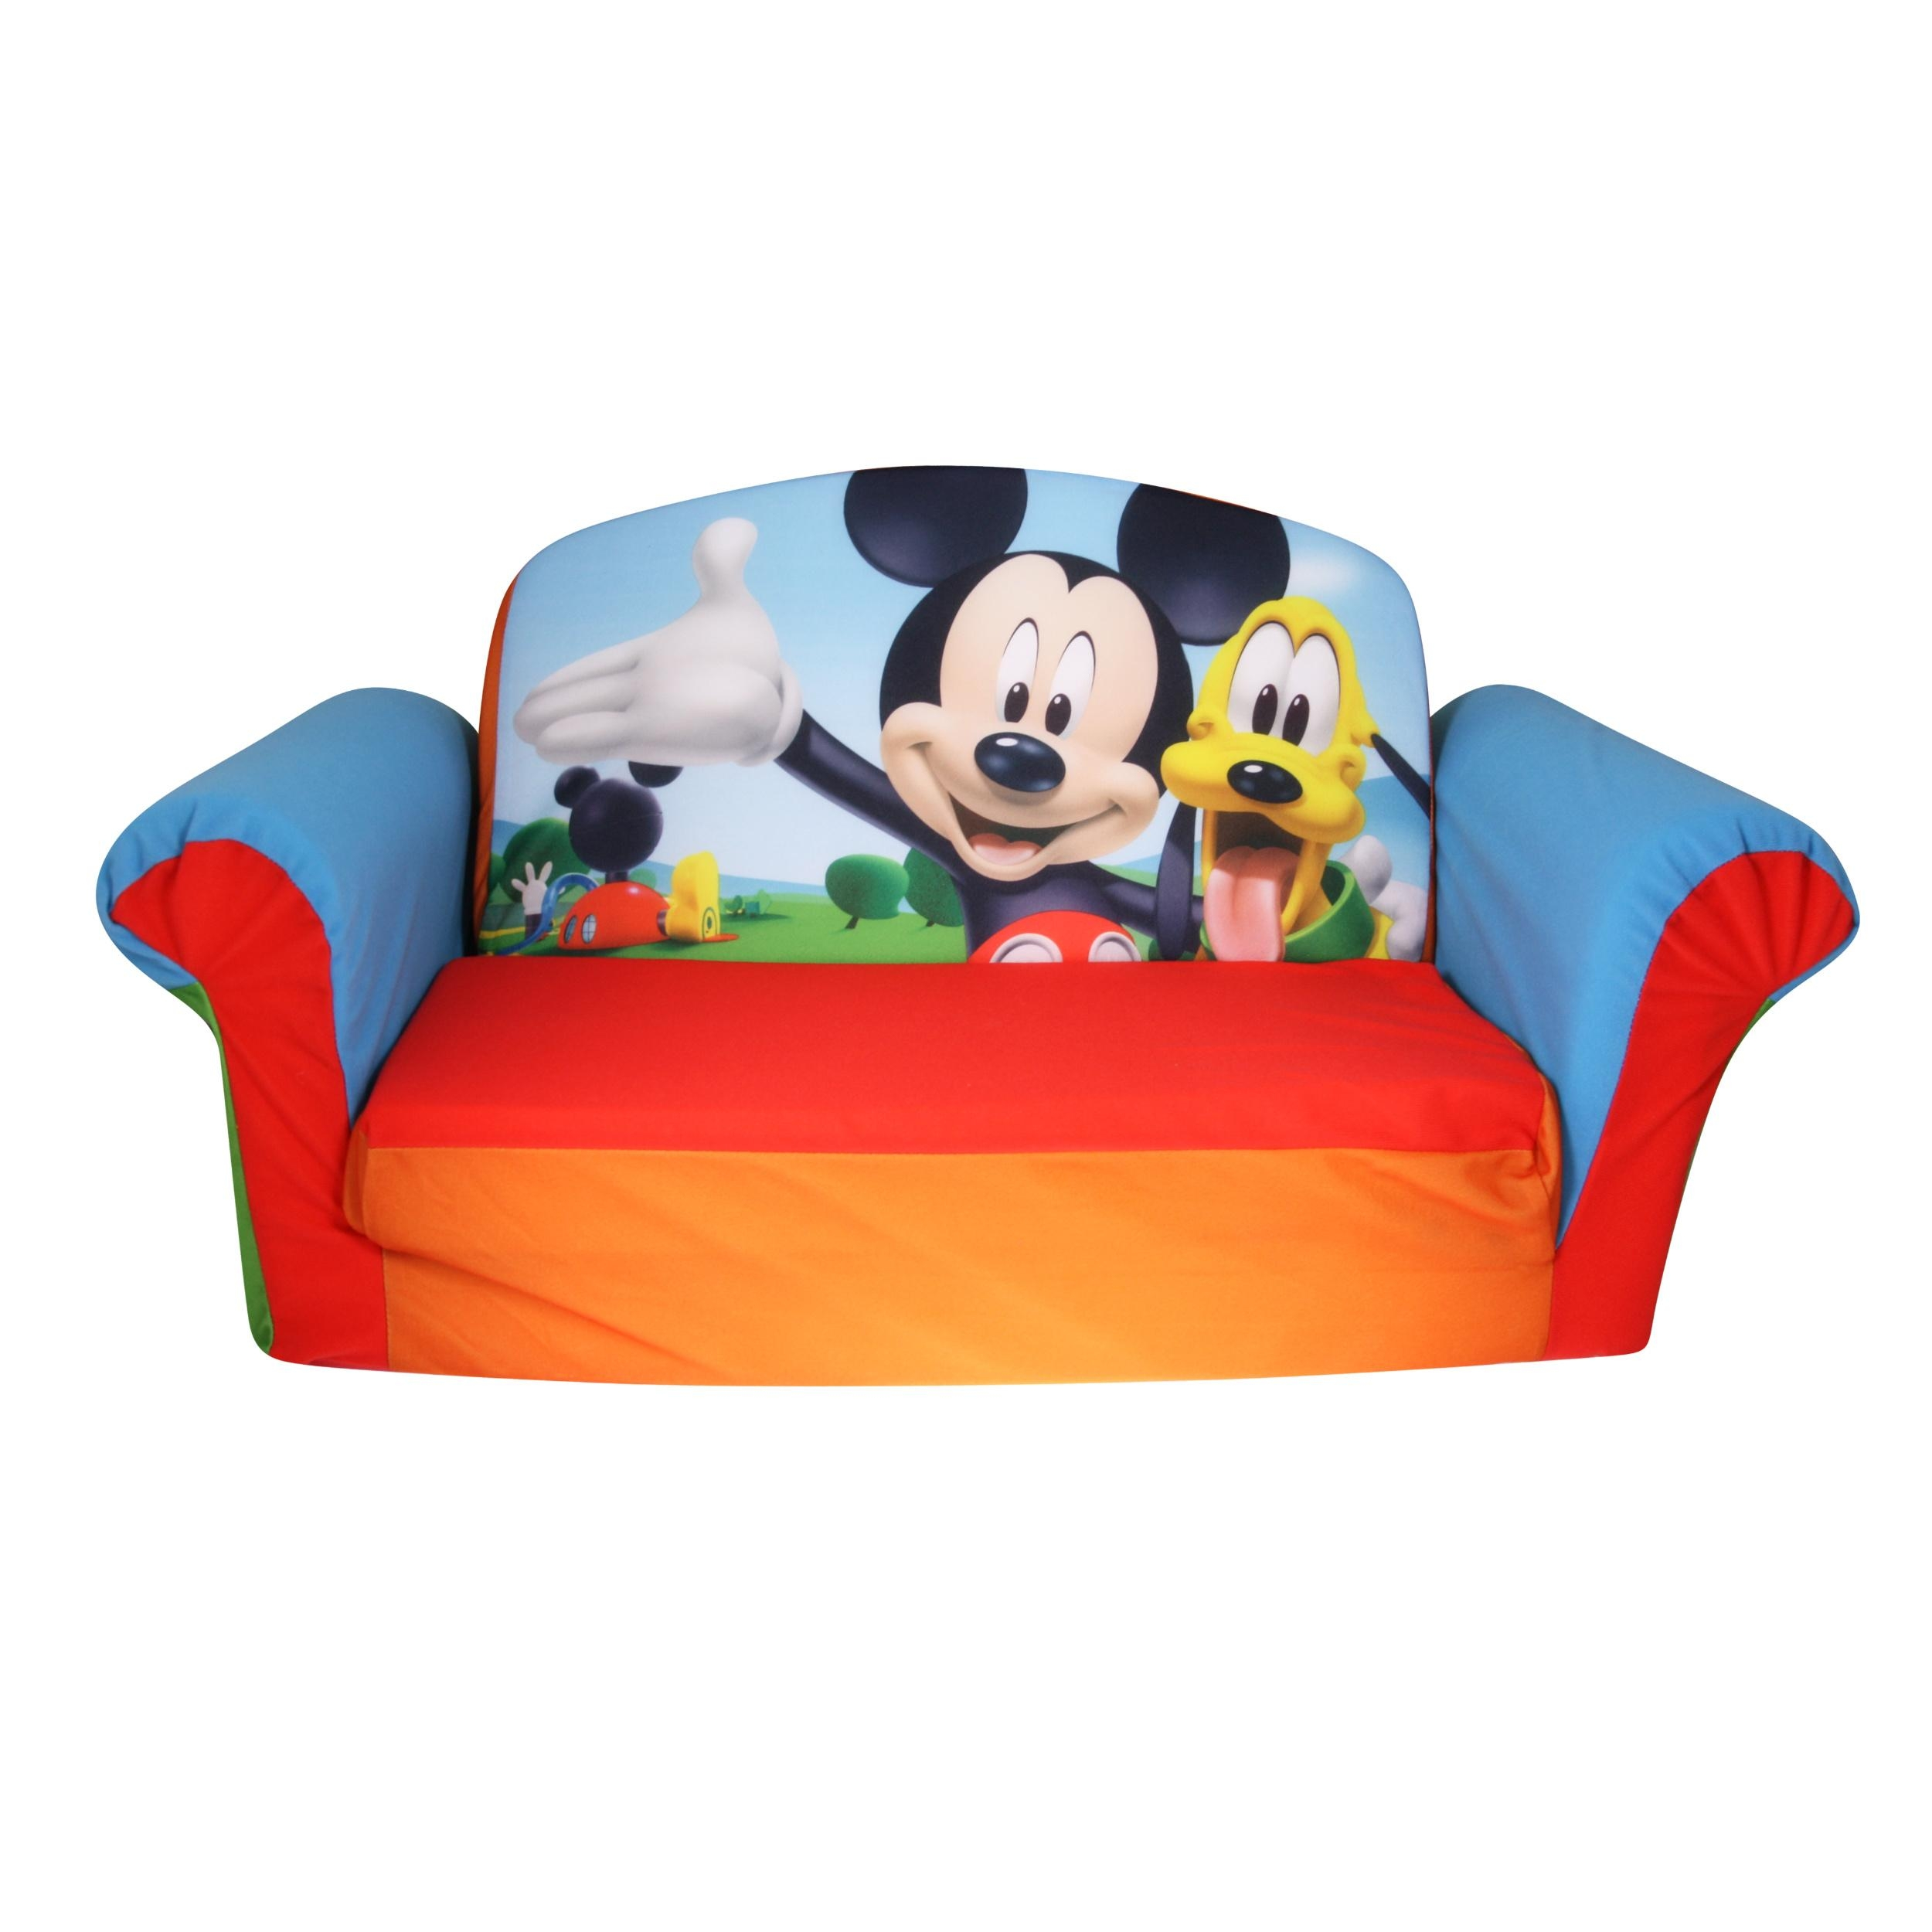 Marshmallow Furniture, Children's 2 In 1 Flip Open Foam Sofa Throughout Mickey Fold Out Couches (Image 6 of 20)